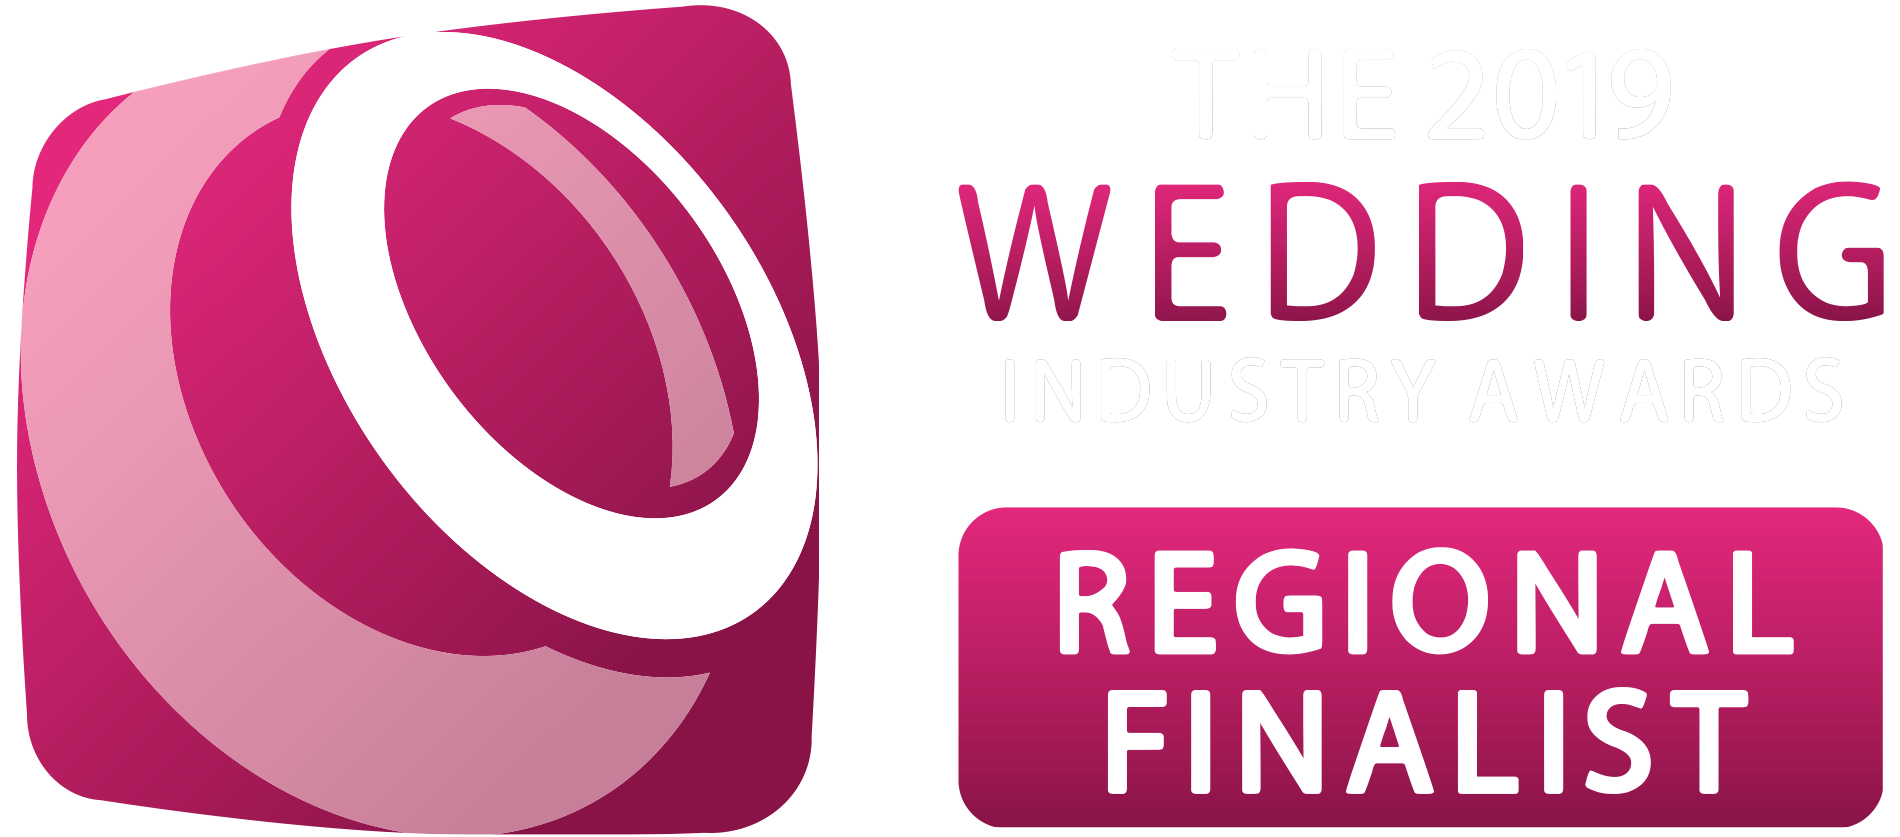 The 2019 Wedidng Industry Awards Regional Finalist - Philip James Photography Wedding Photographer Birmingham